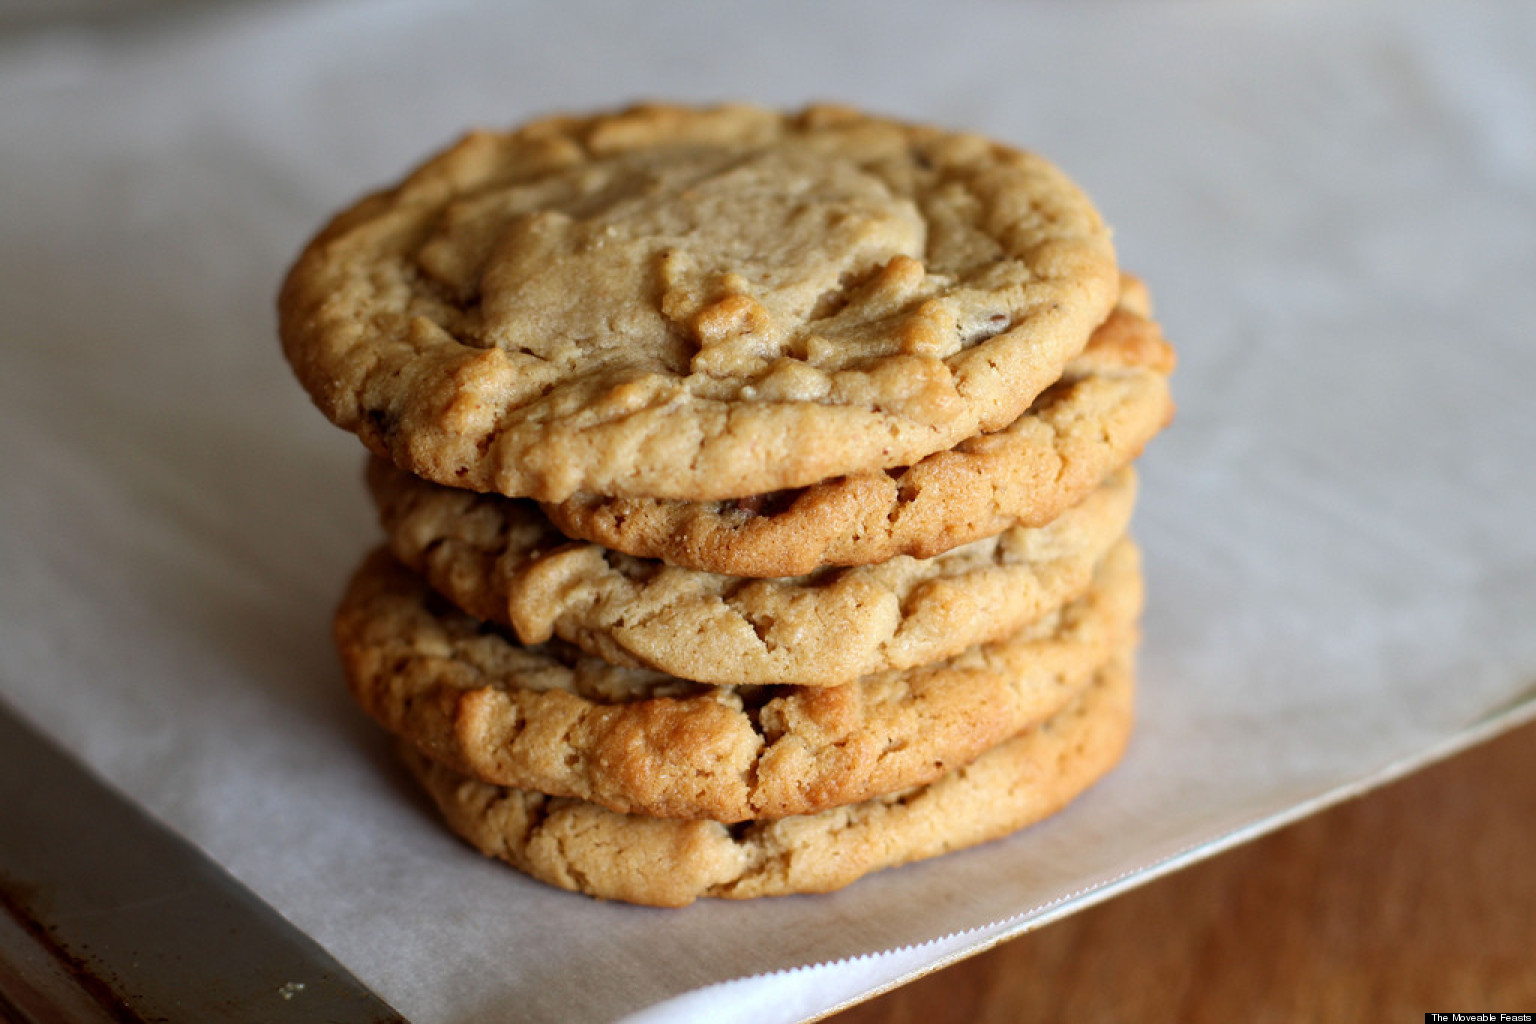 Peanut Butter Cookie Recipes To Try On National Peanut Butter Cookie ...